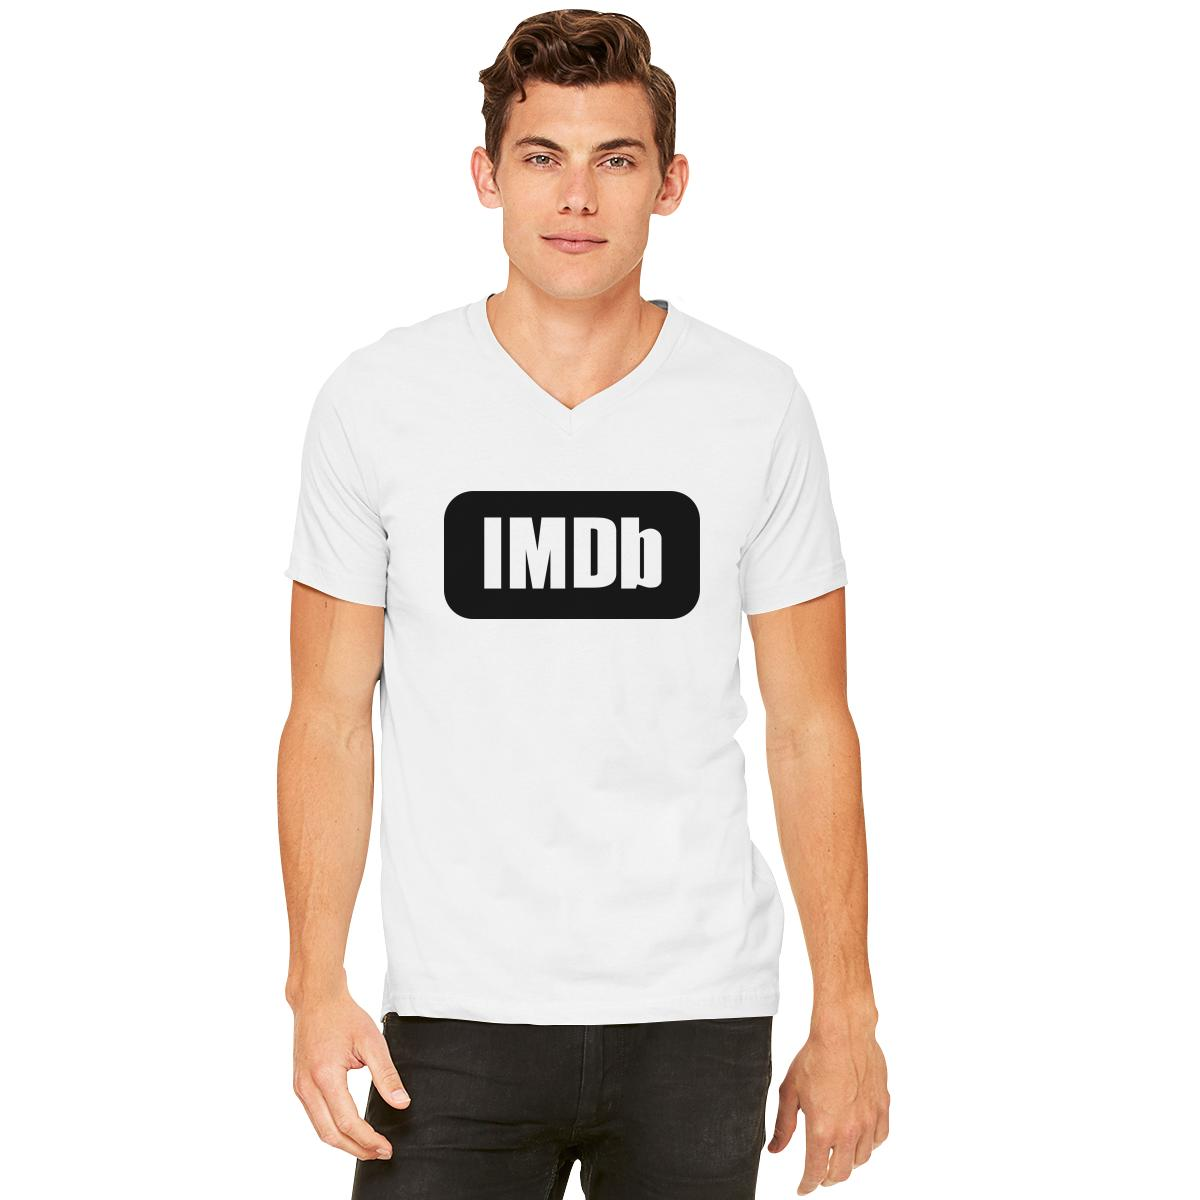 IMDb Logo V-Neck T-shirt | Customon.com